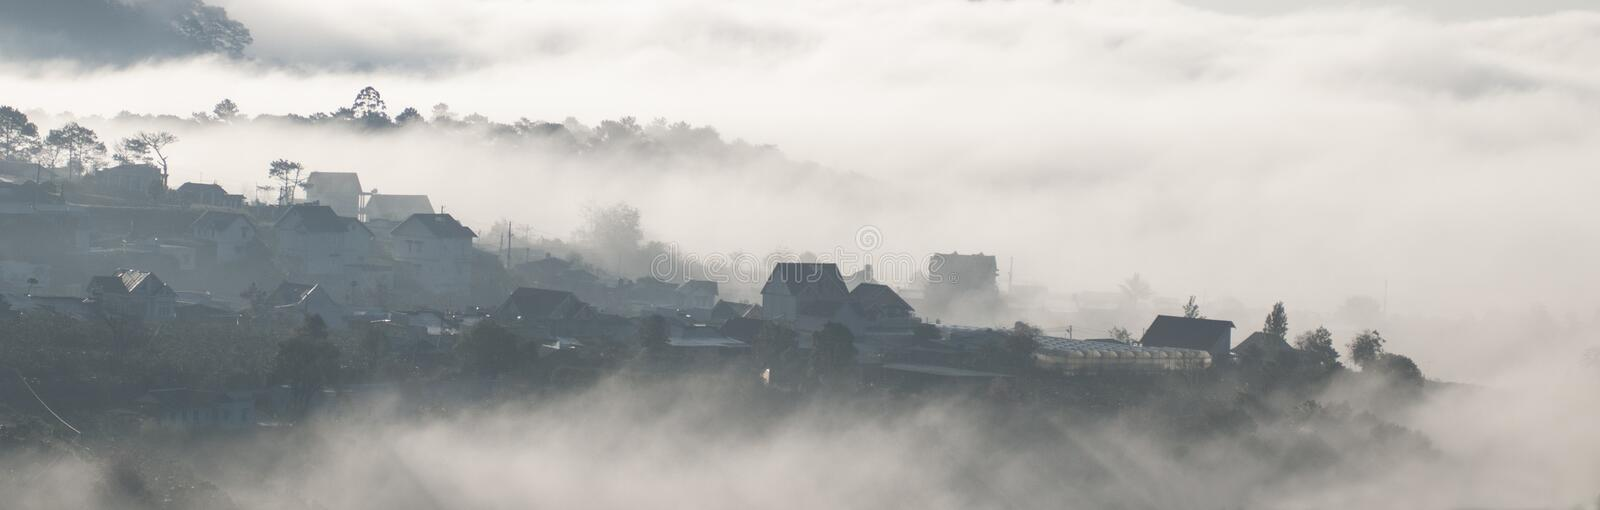 A life in the clouds royalty free stock images